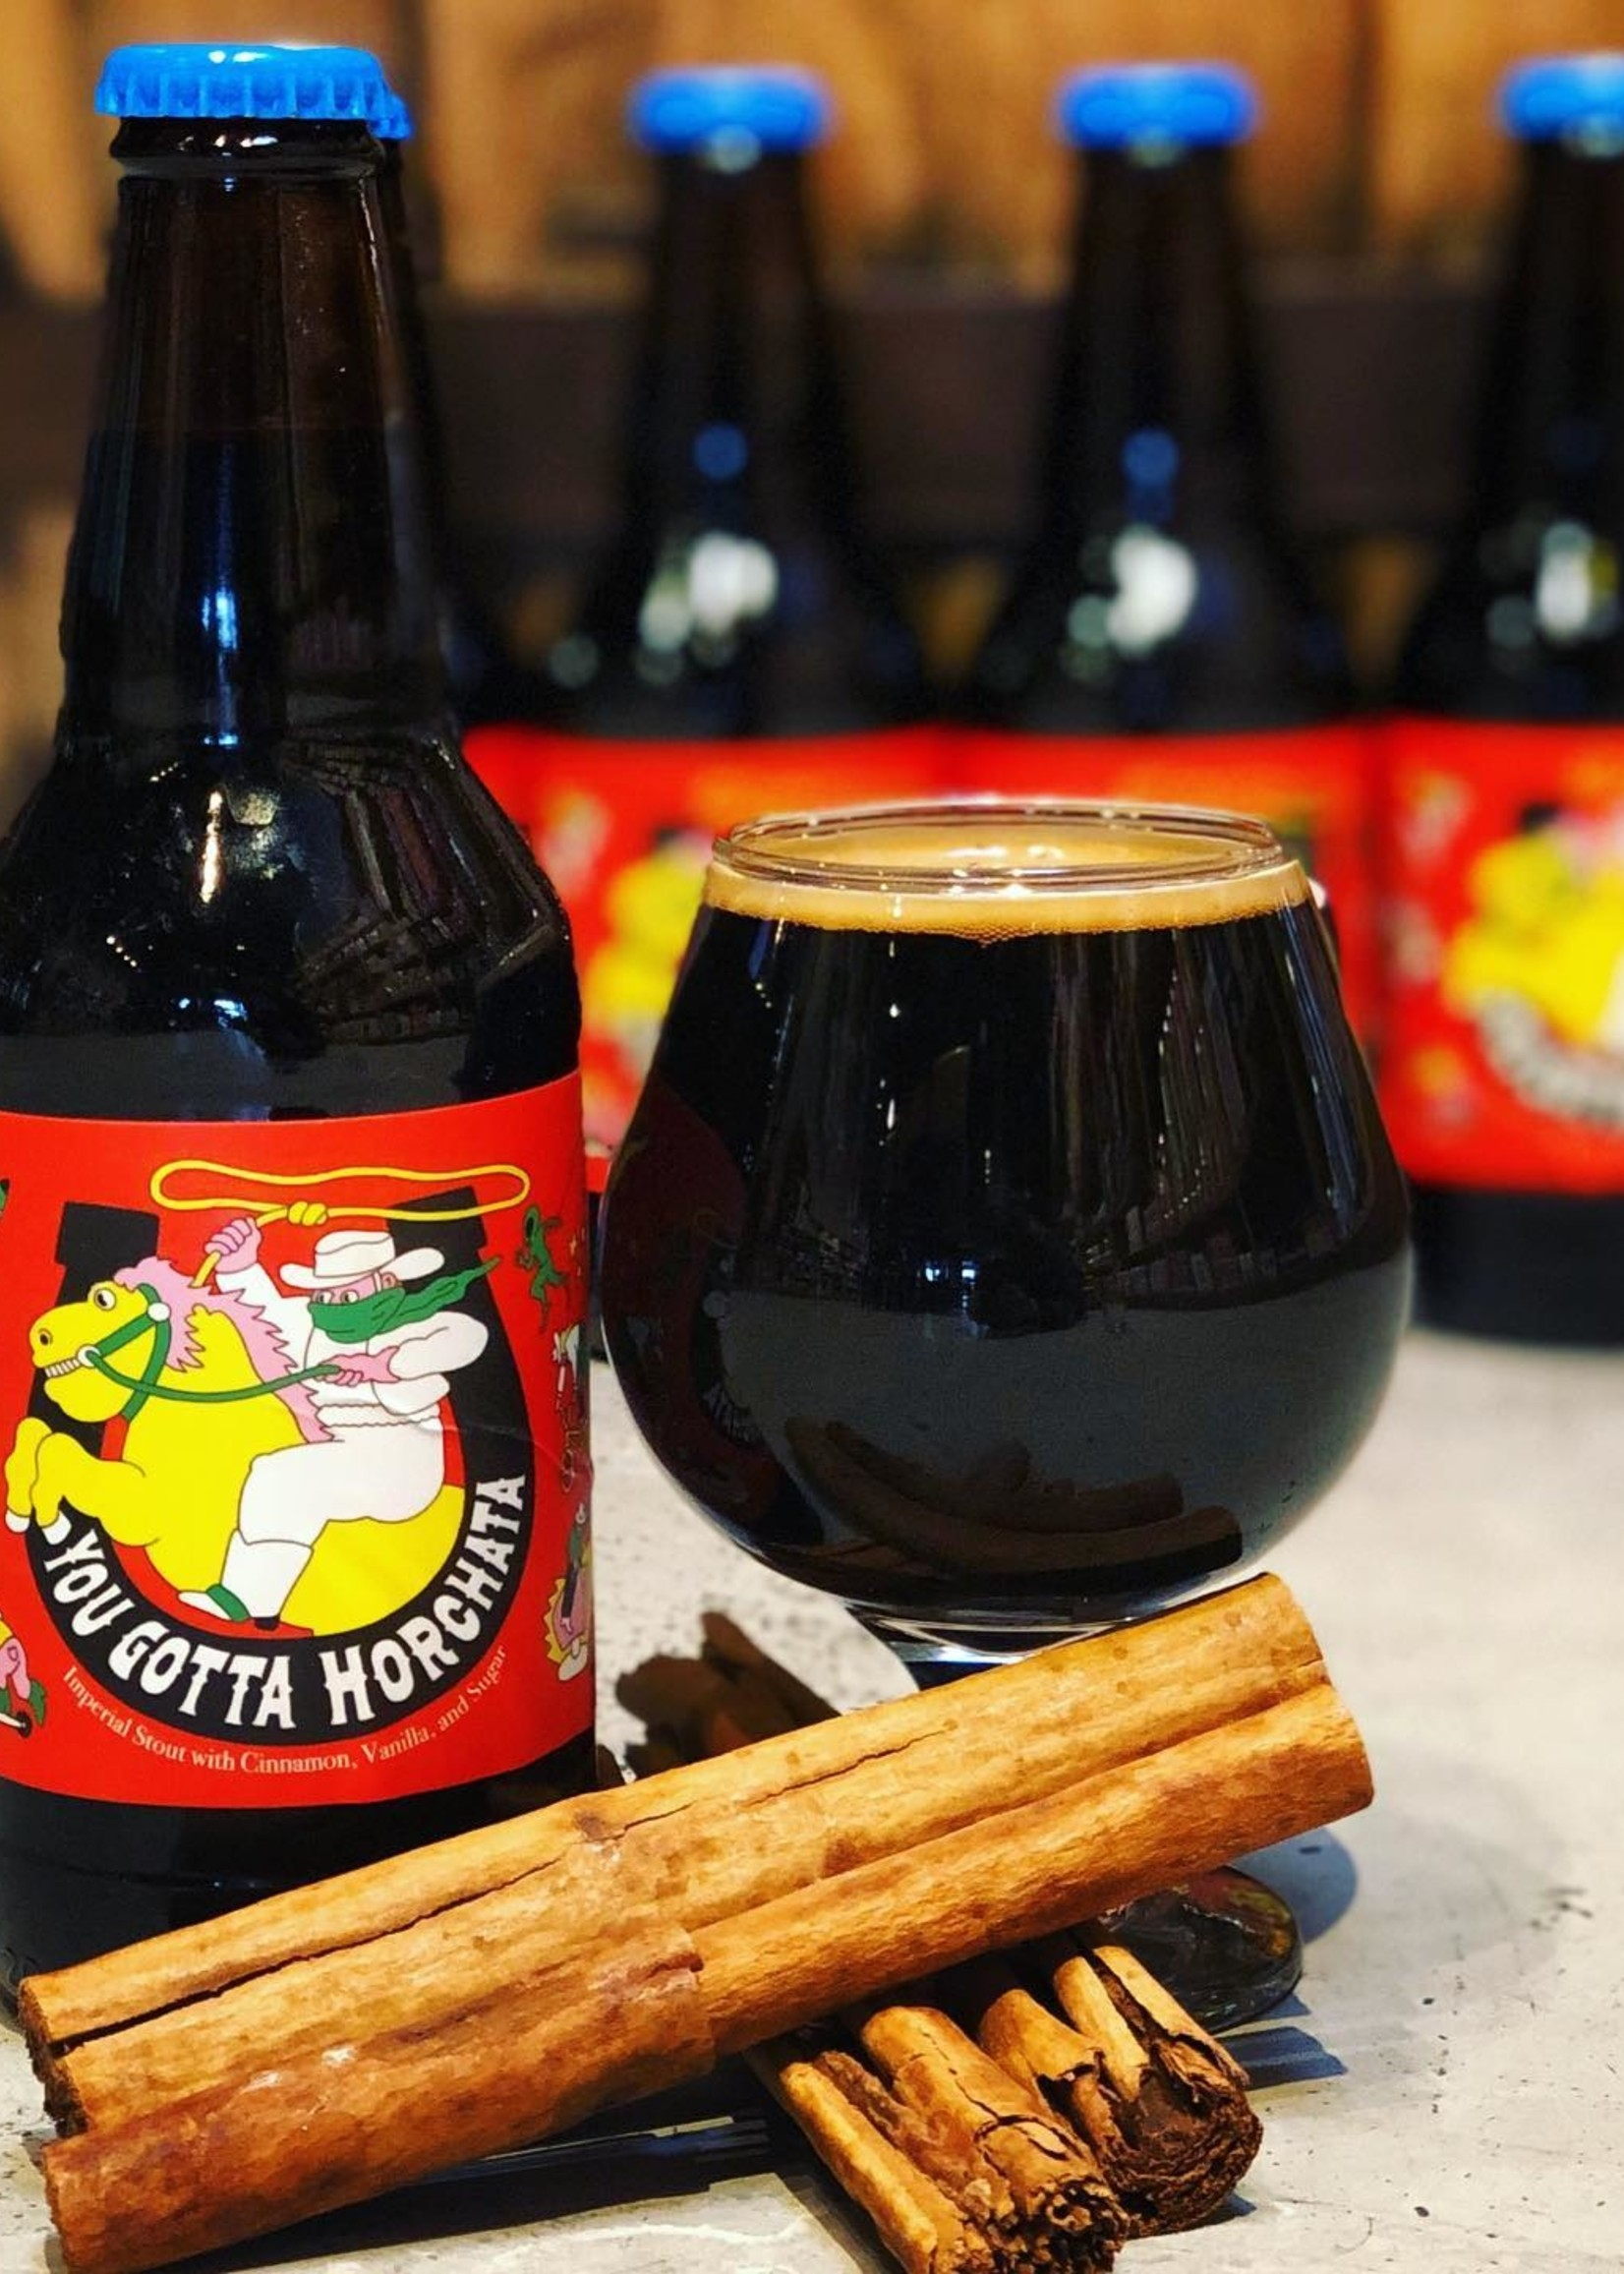 Prairie Artisan Ales You Gotta Horchata Imperial Stout with Cinnamon, Vanilla and Sugar